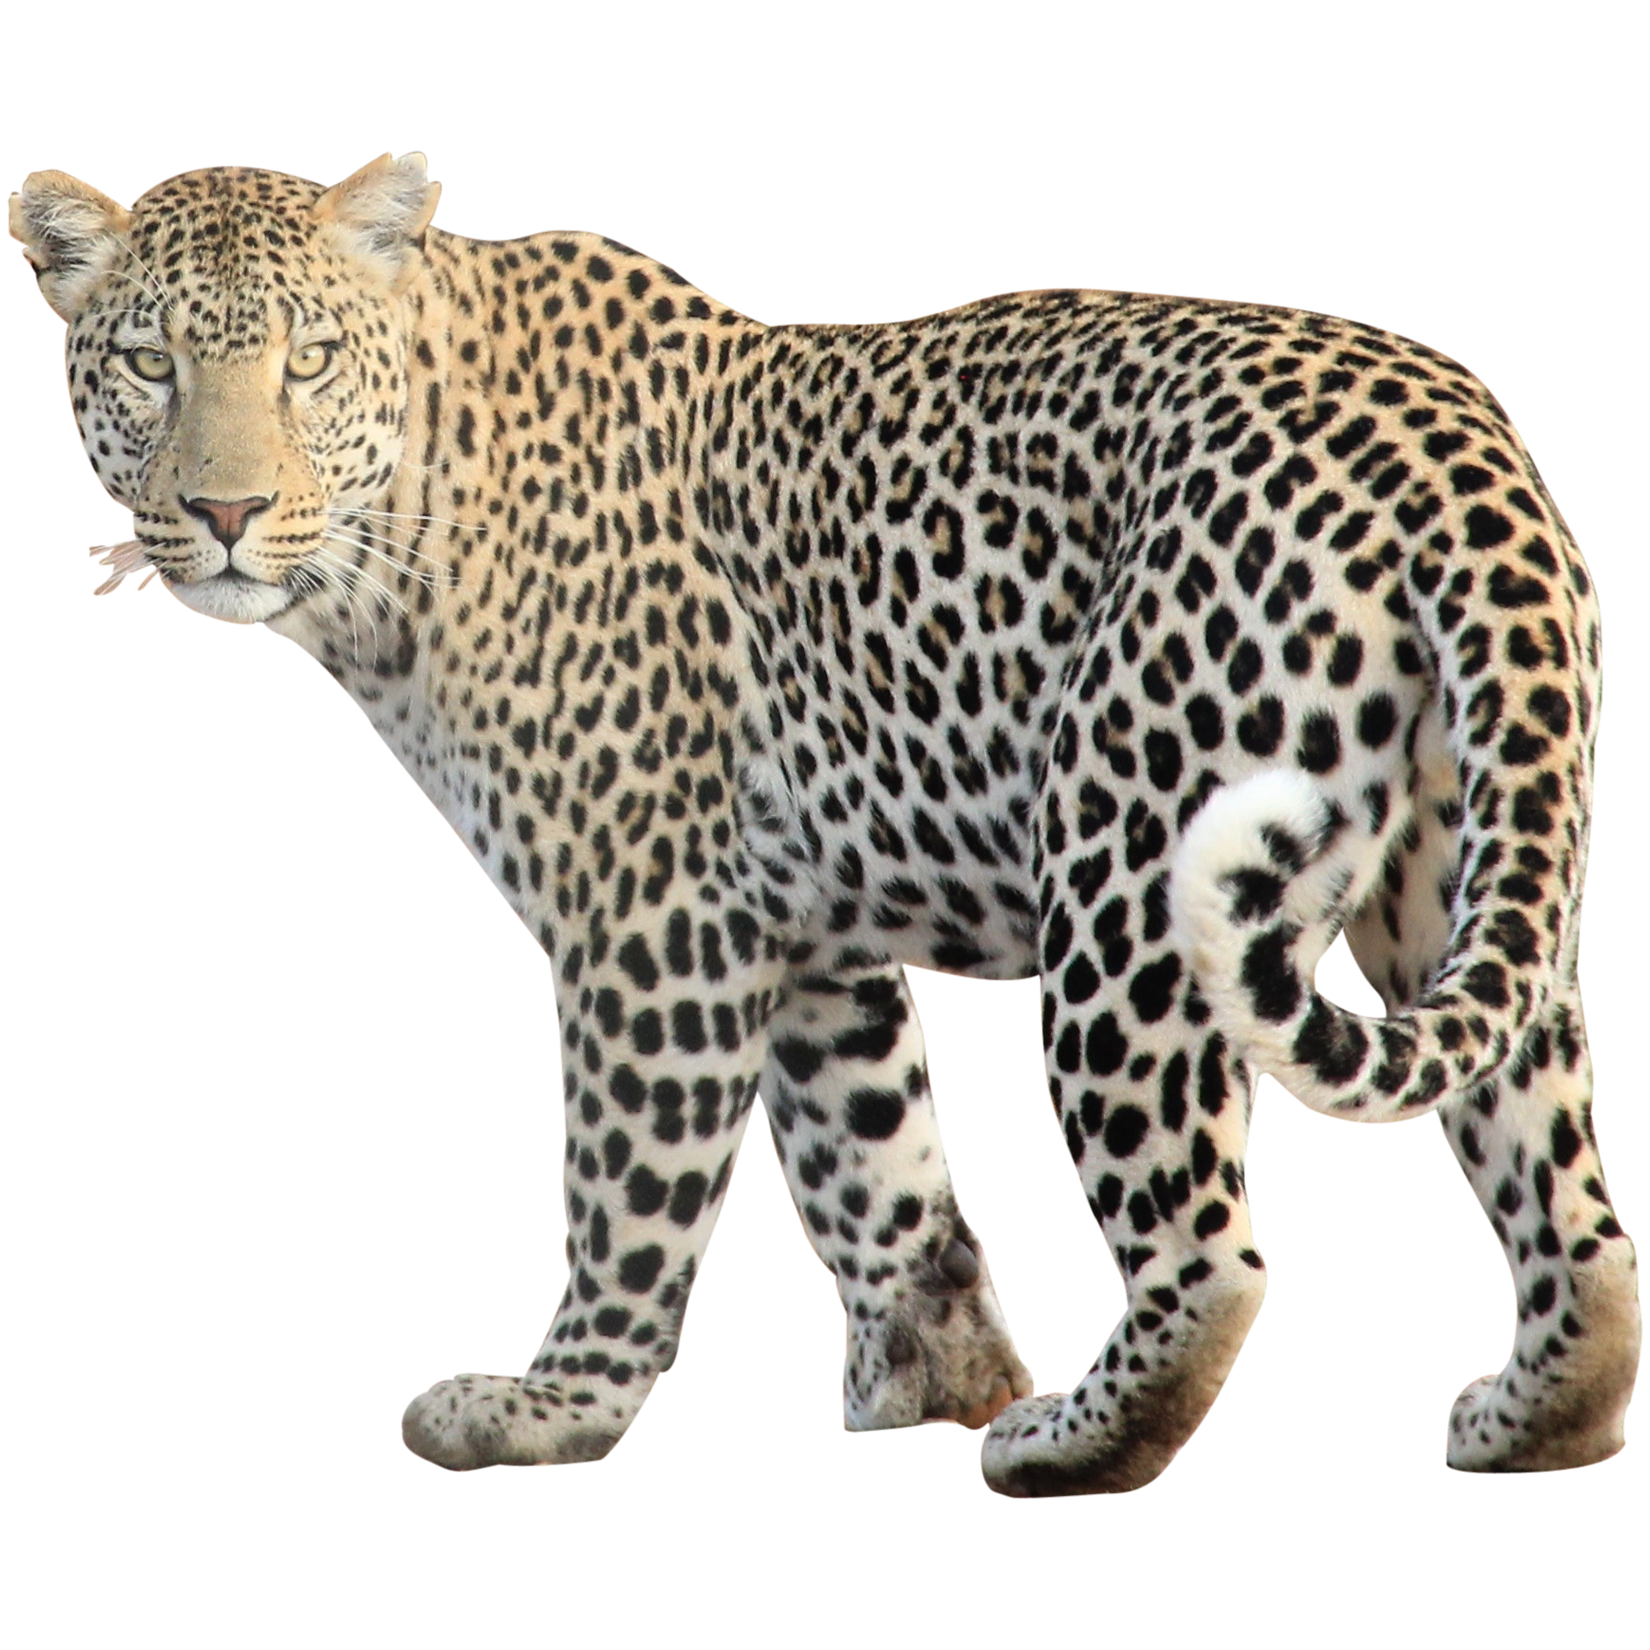 Animals png free images. Cheetah clipart transparent background